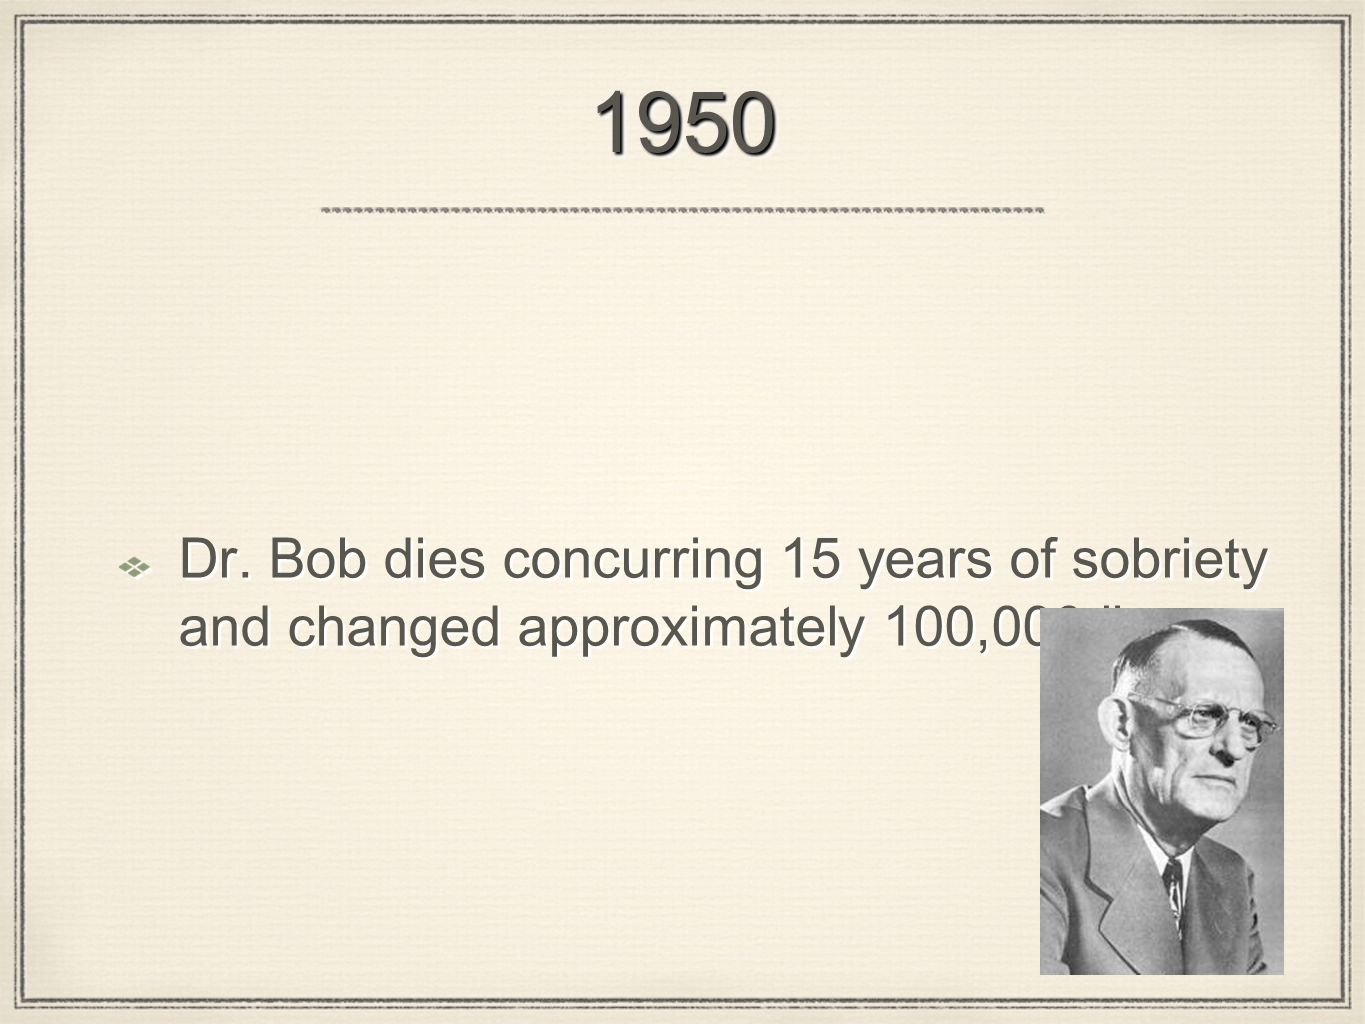 19501950 Dr. Bob dies concurring 15 years of sobriety and changed approximately 100,000 lives.